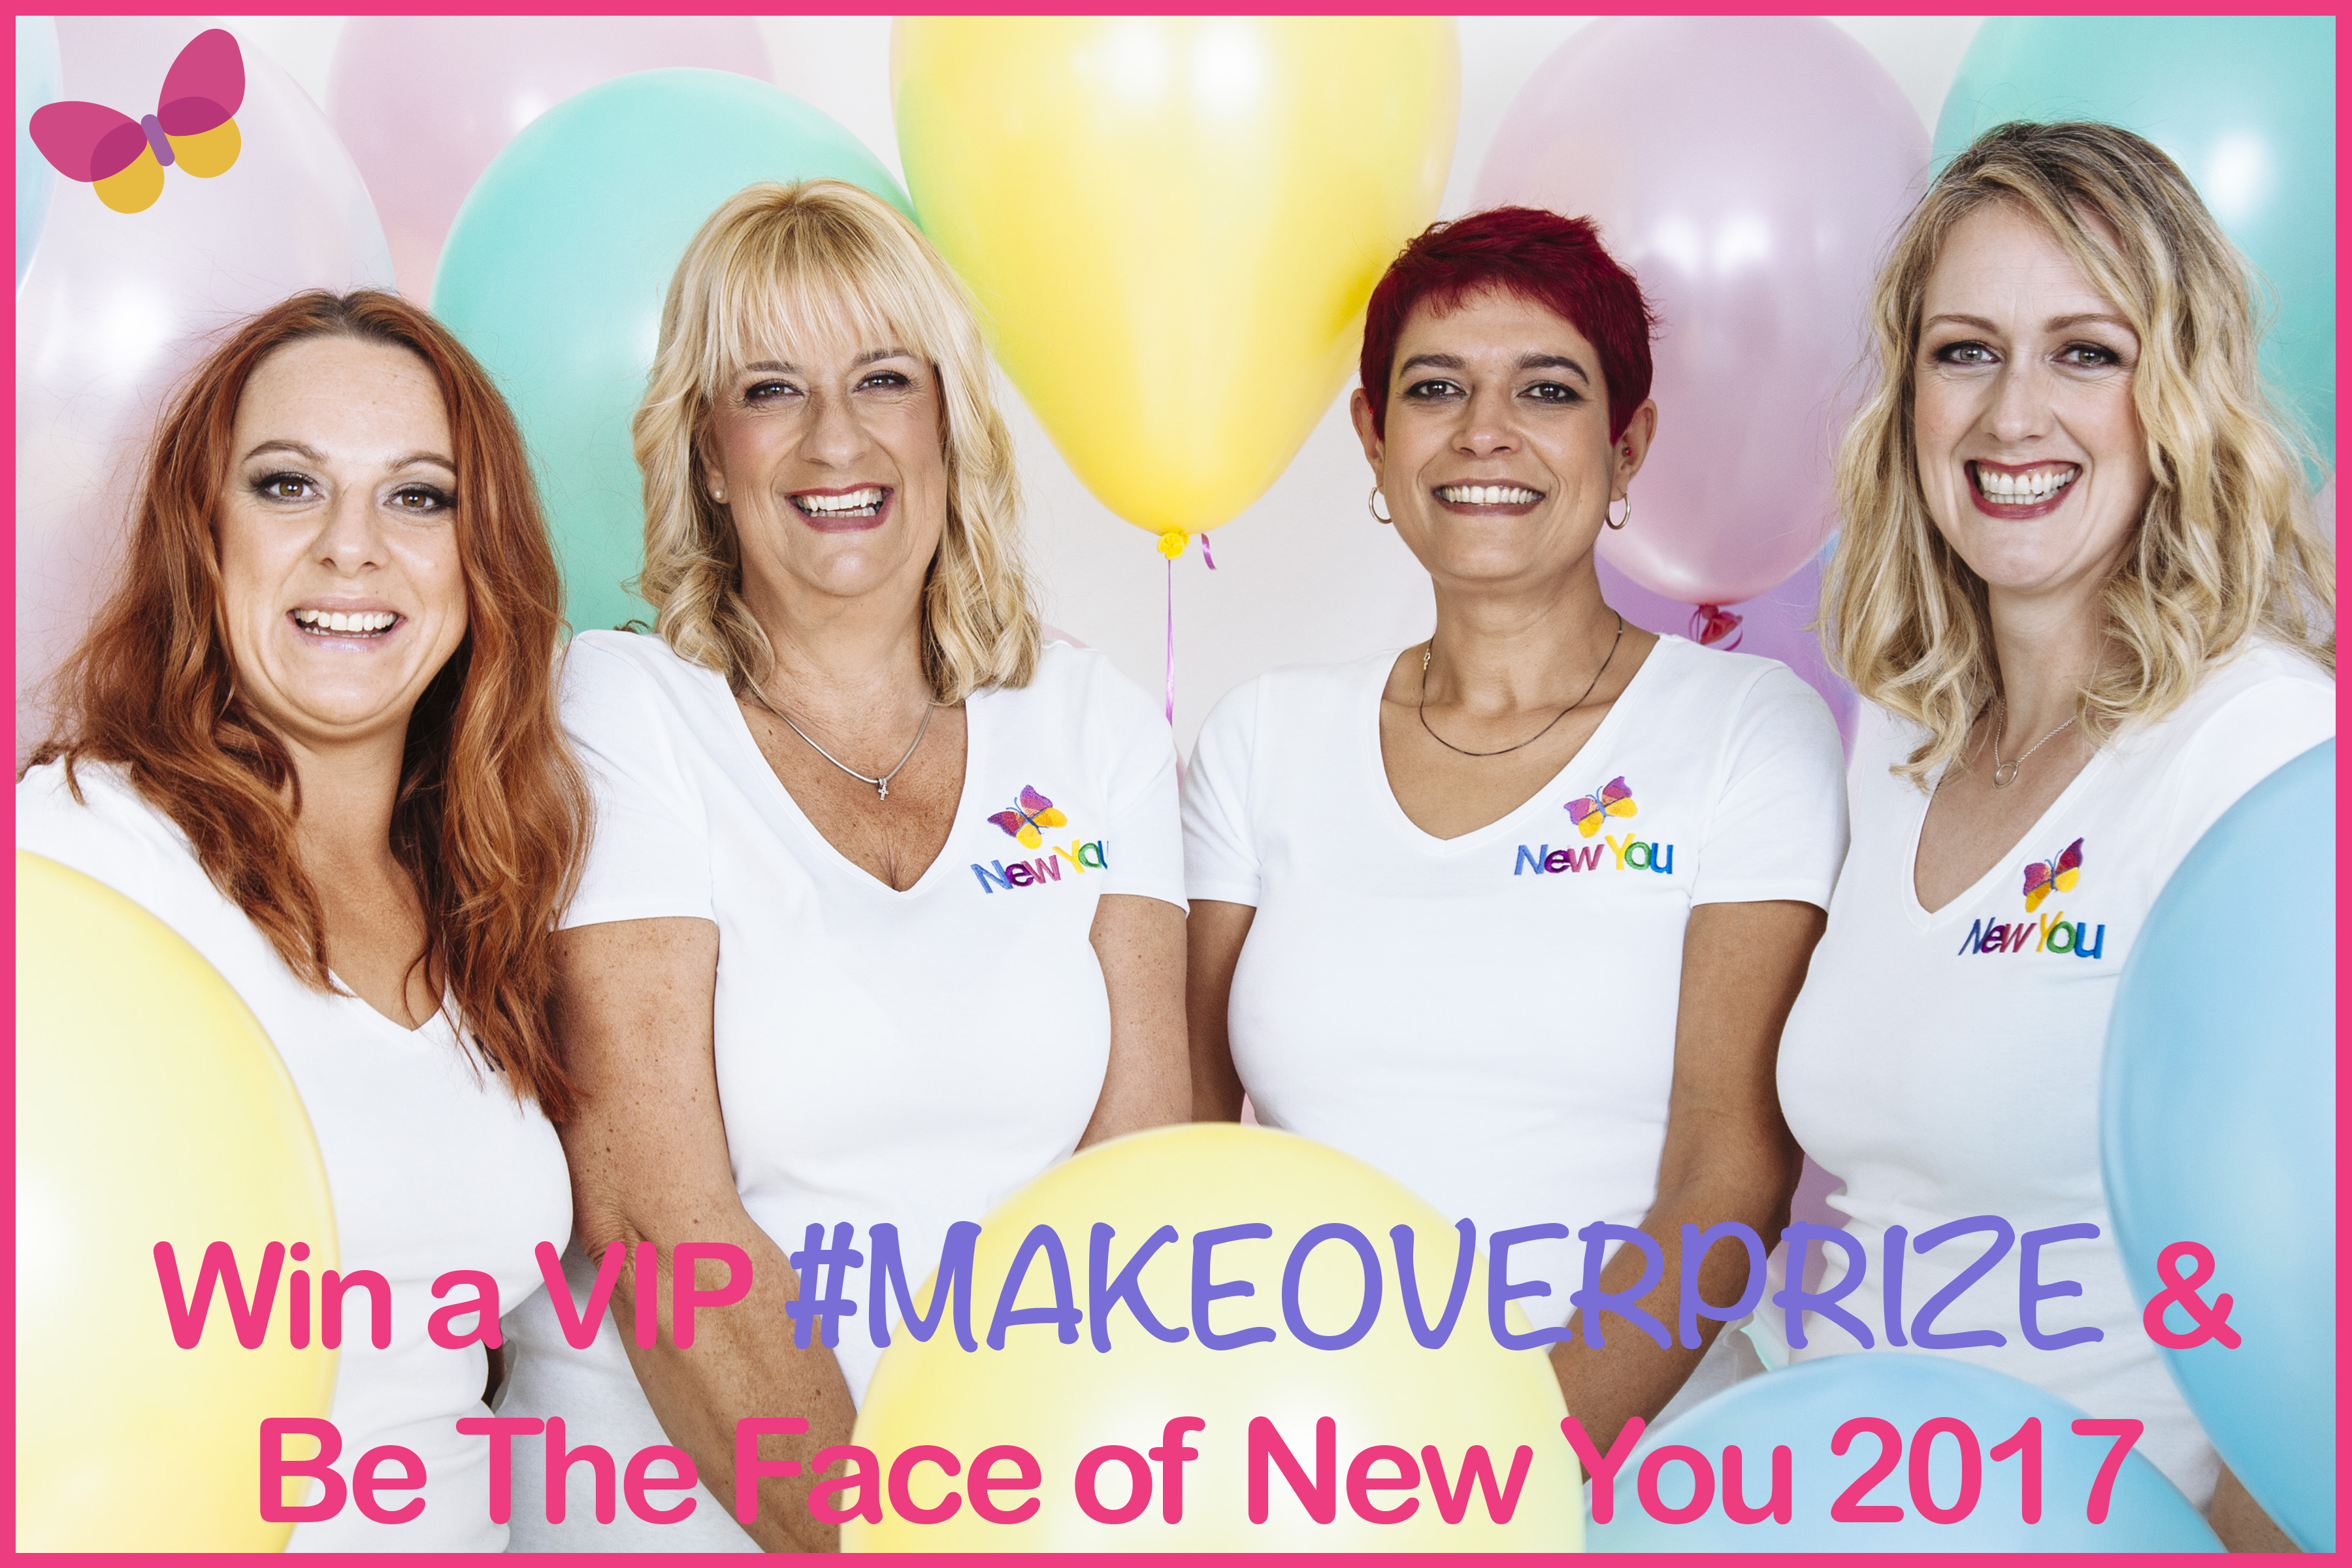 Win a VIP #MAKEOVERPRIZE & Be The Face of New You 2017